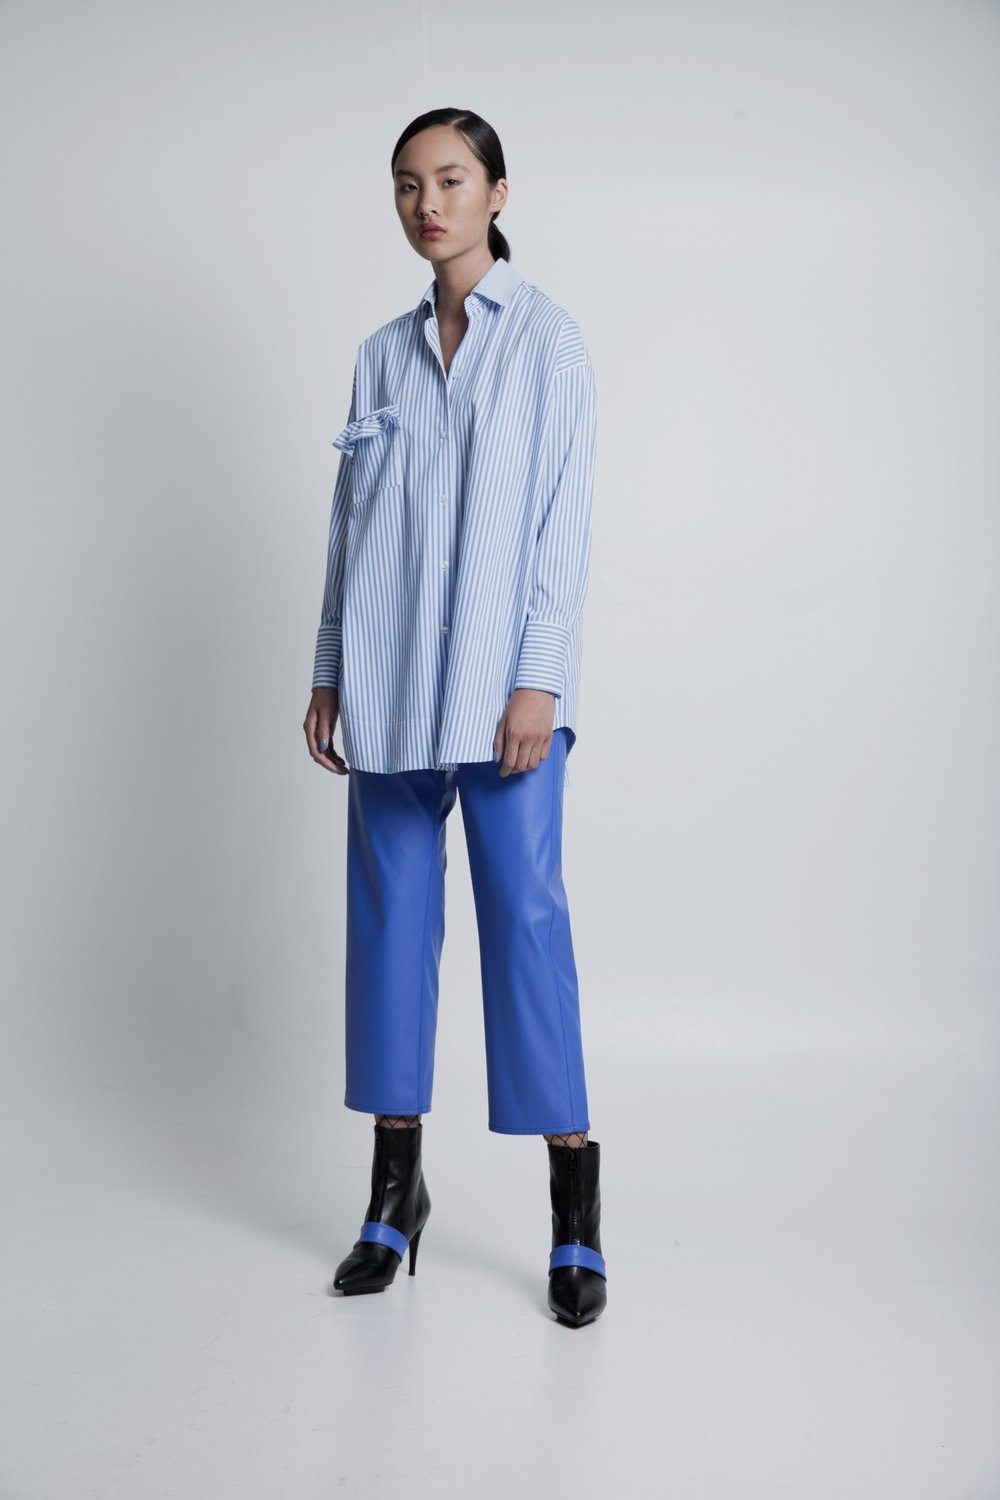 Oversized boyfriend shirt with ruffle pocket striped